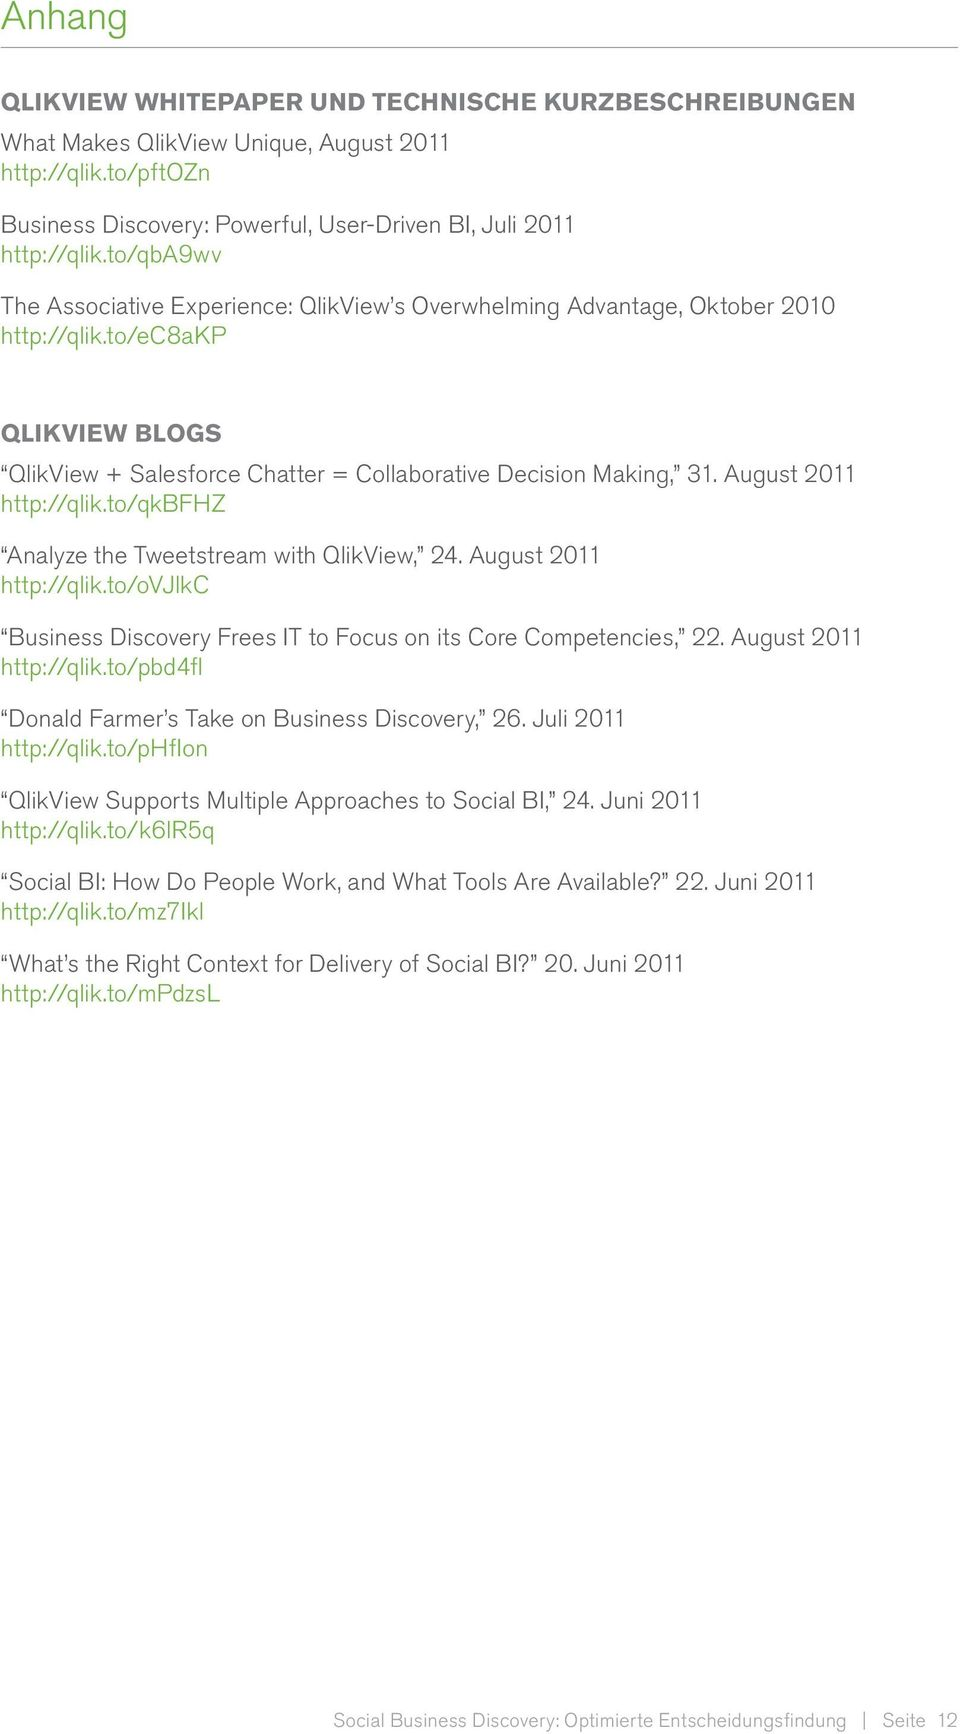 August 2011 http://qlik.to/qkbfhz Analyze the Tweetstream with QlikView, 24. August 2011 http://qlik.to/ovjlkc Business Discovery Frees IT to Focus on its Core Competencies, 22.